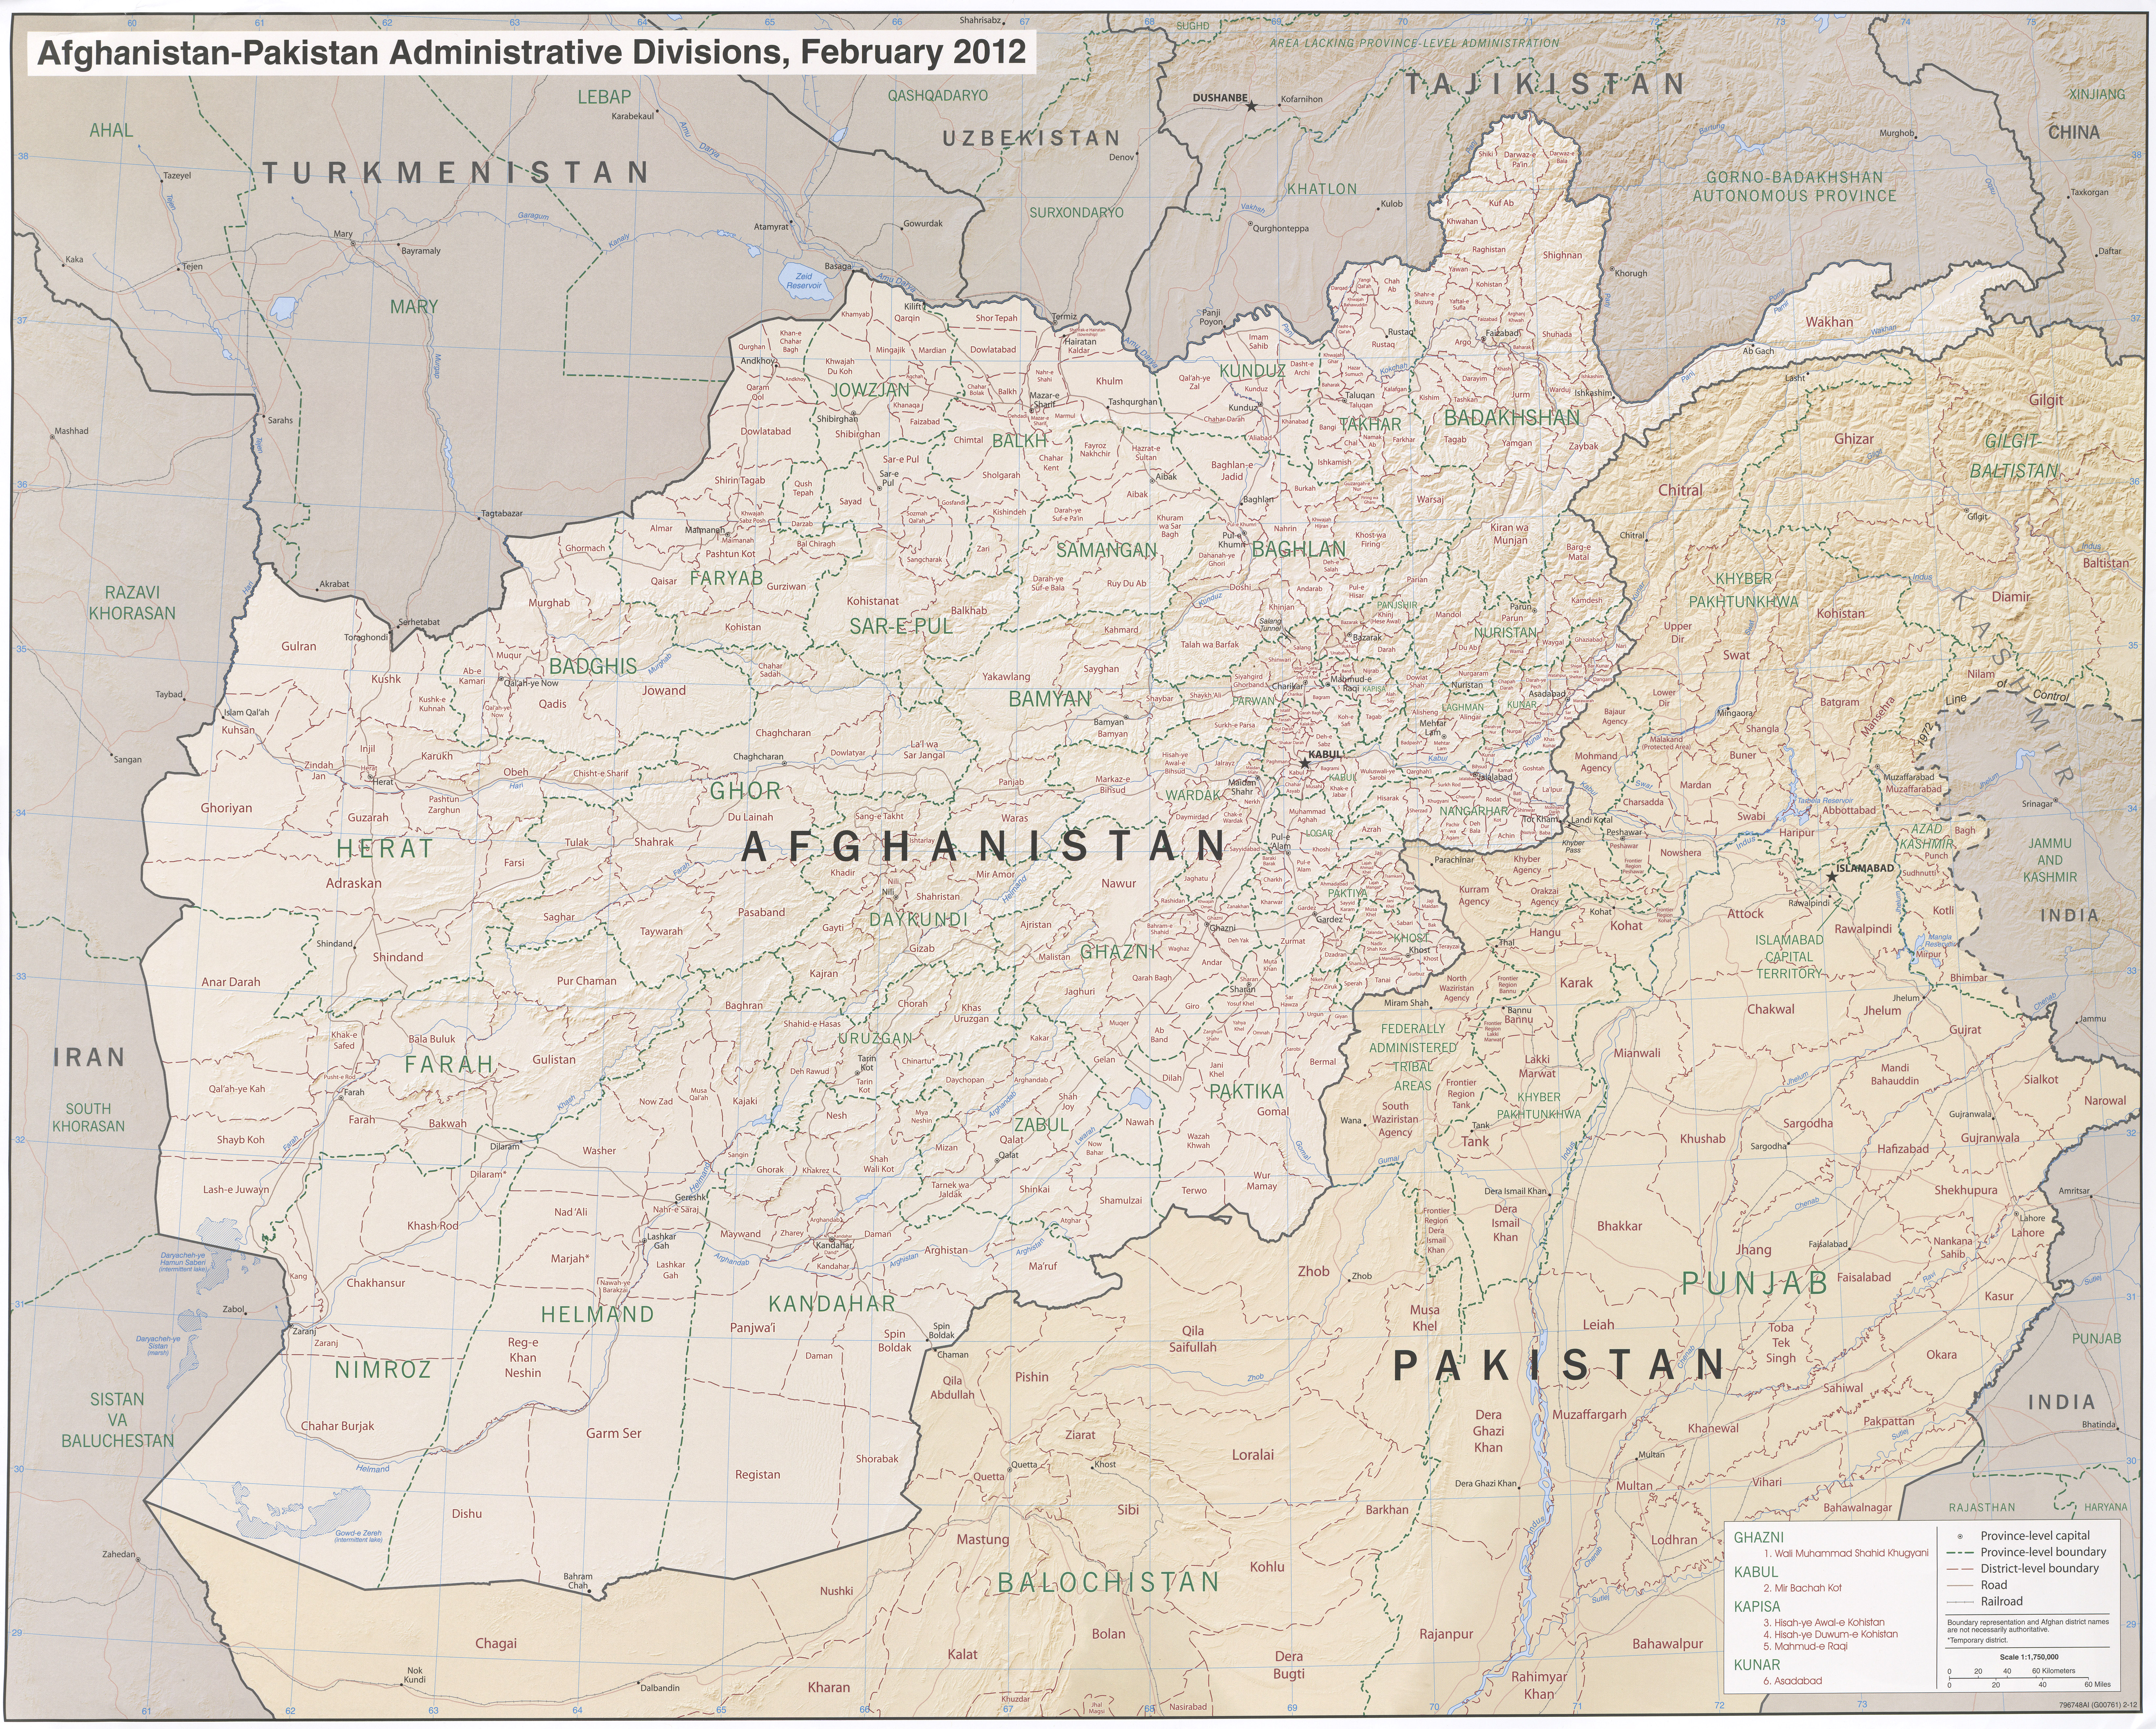 Afghanistan Maps - Perry-Castañeda Map Collection - UT ... on map of western hemisphere, osama bin laden, map of asia, map of middle east, map of netherlands, map of europe, map of kathmandu, map of world, map of siberia, map of aden, map of vietnam, map of hindu kush, map of jamaica, sri lanka, map of pakistan, map of kandahar, map of africa, saudi arabia, map of islamic countries, map of usa, middle east, map of kyrgyzstan, map of united kingdom, united states of america,